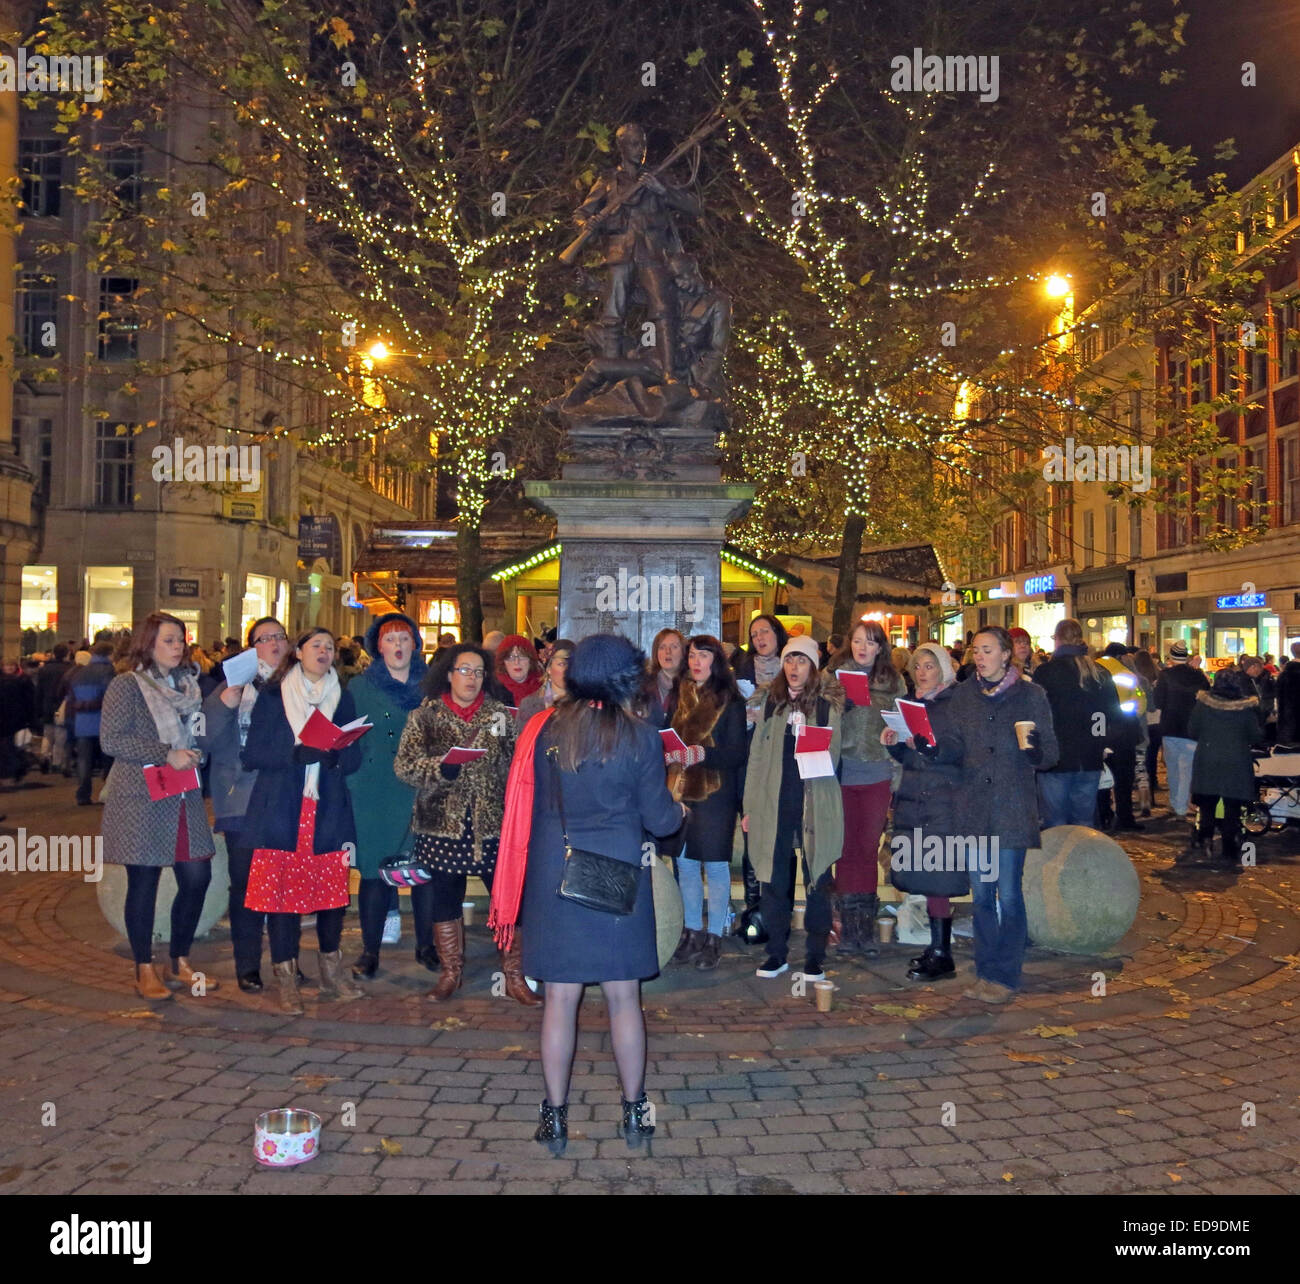 Traditional Carol Singers Manchester St Annes Sq, England, UK at night - Stock Image